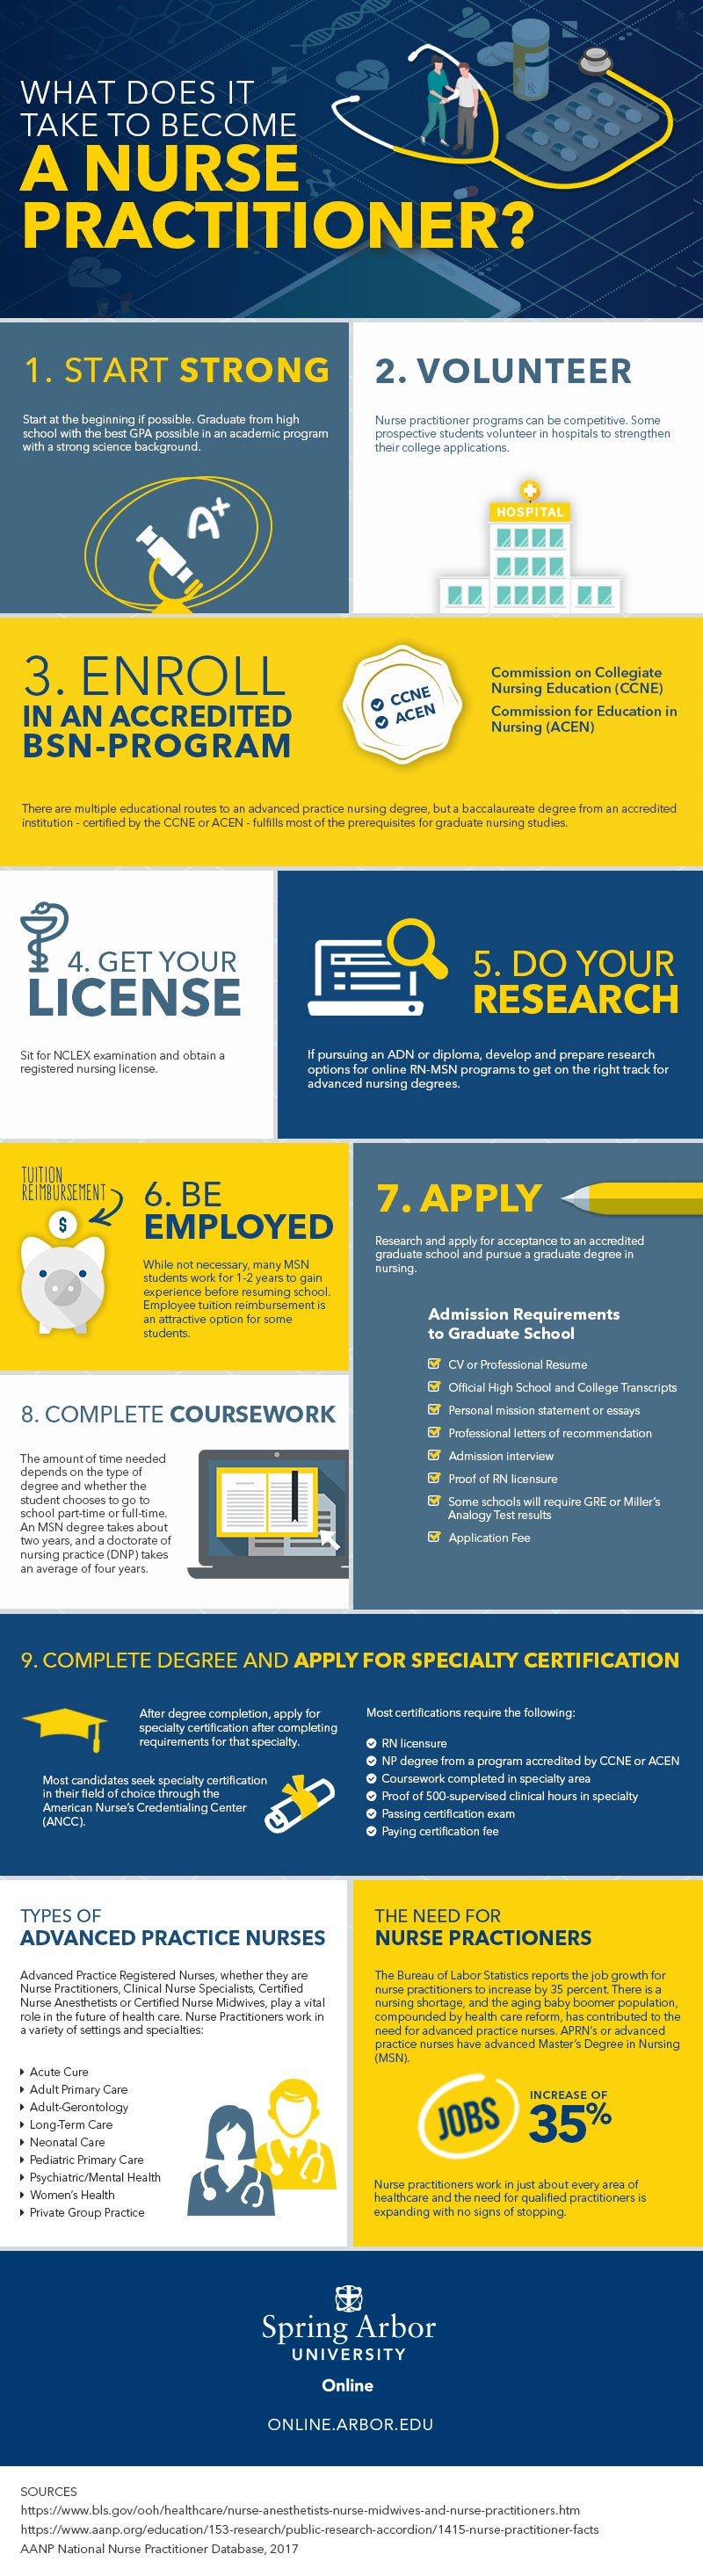 What Does It Take to Become a Nurse Practitioner? Infographic